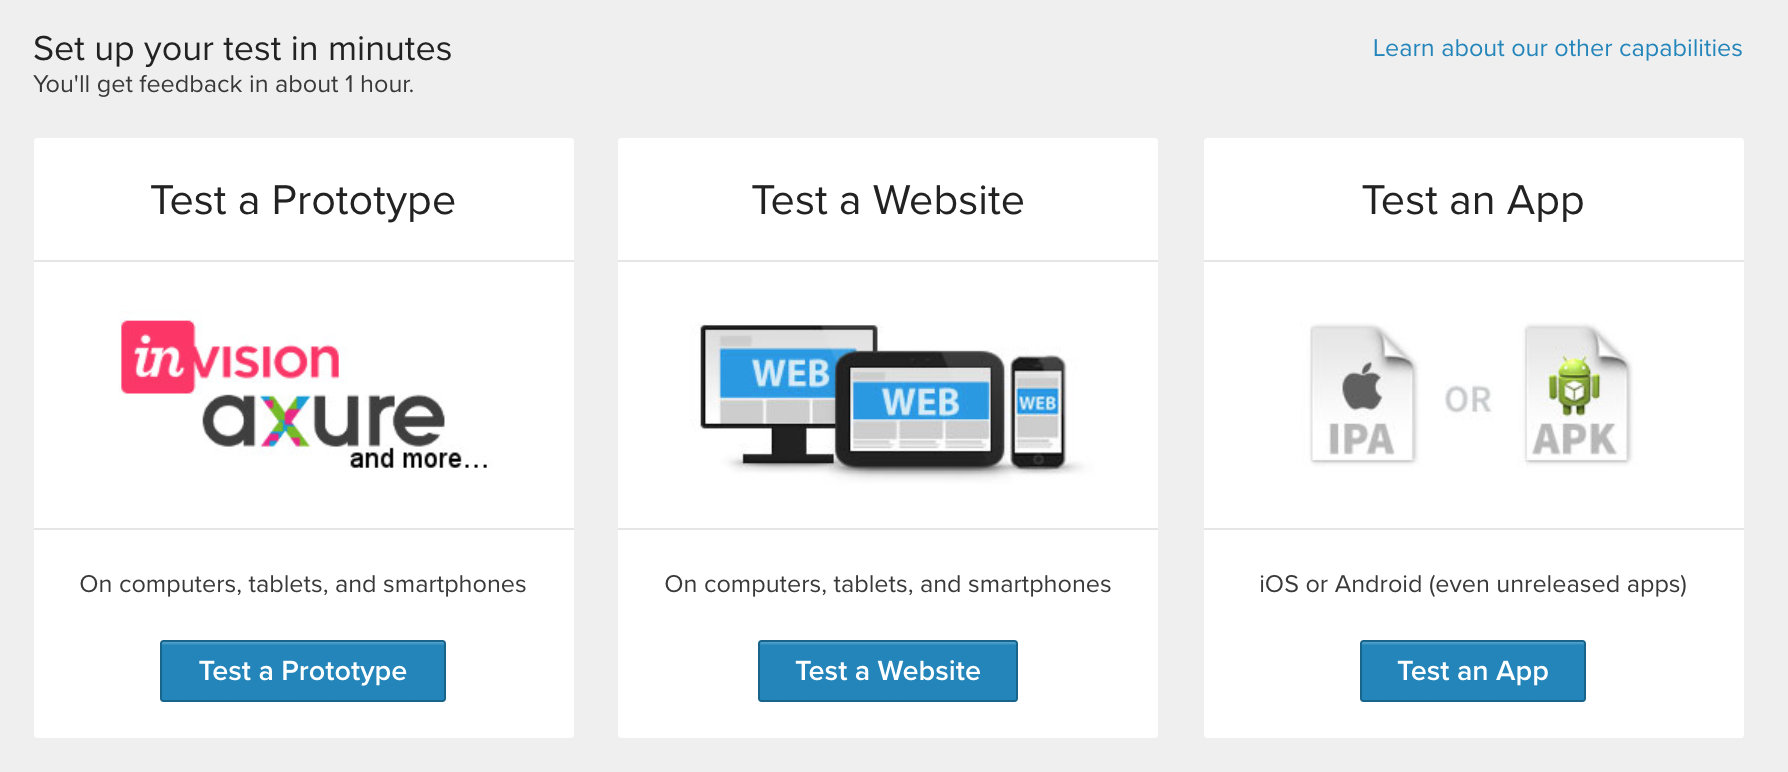 A 6-step guide on how to use Flinto to do remote user testing